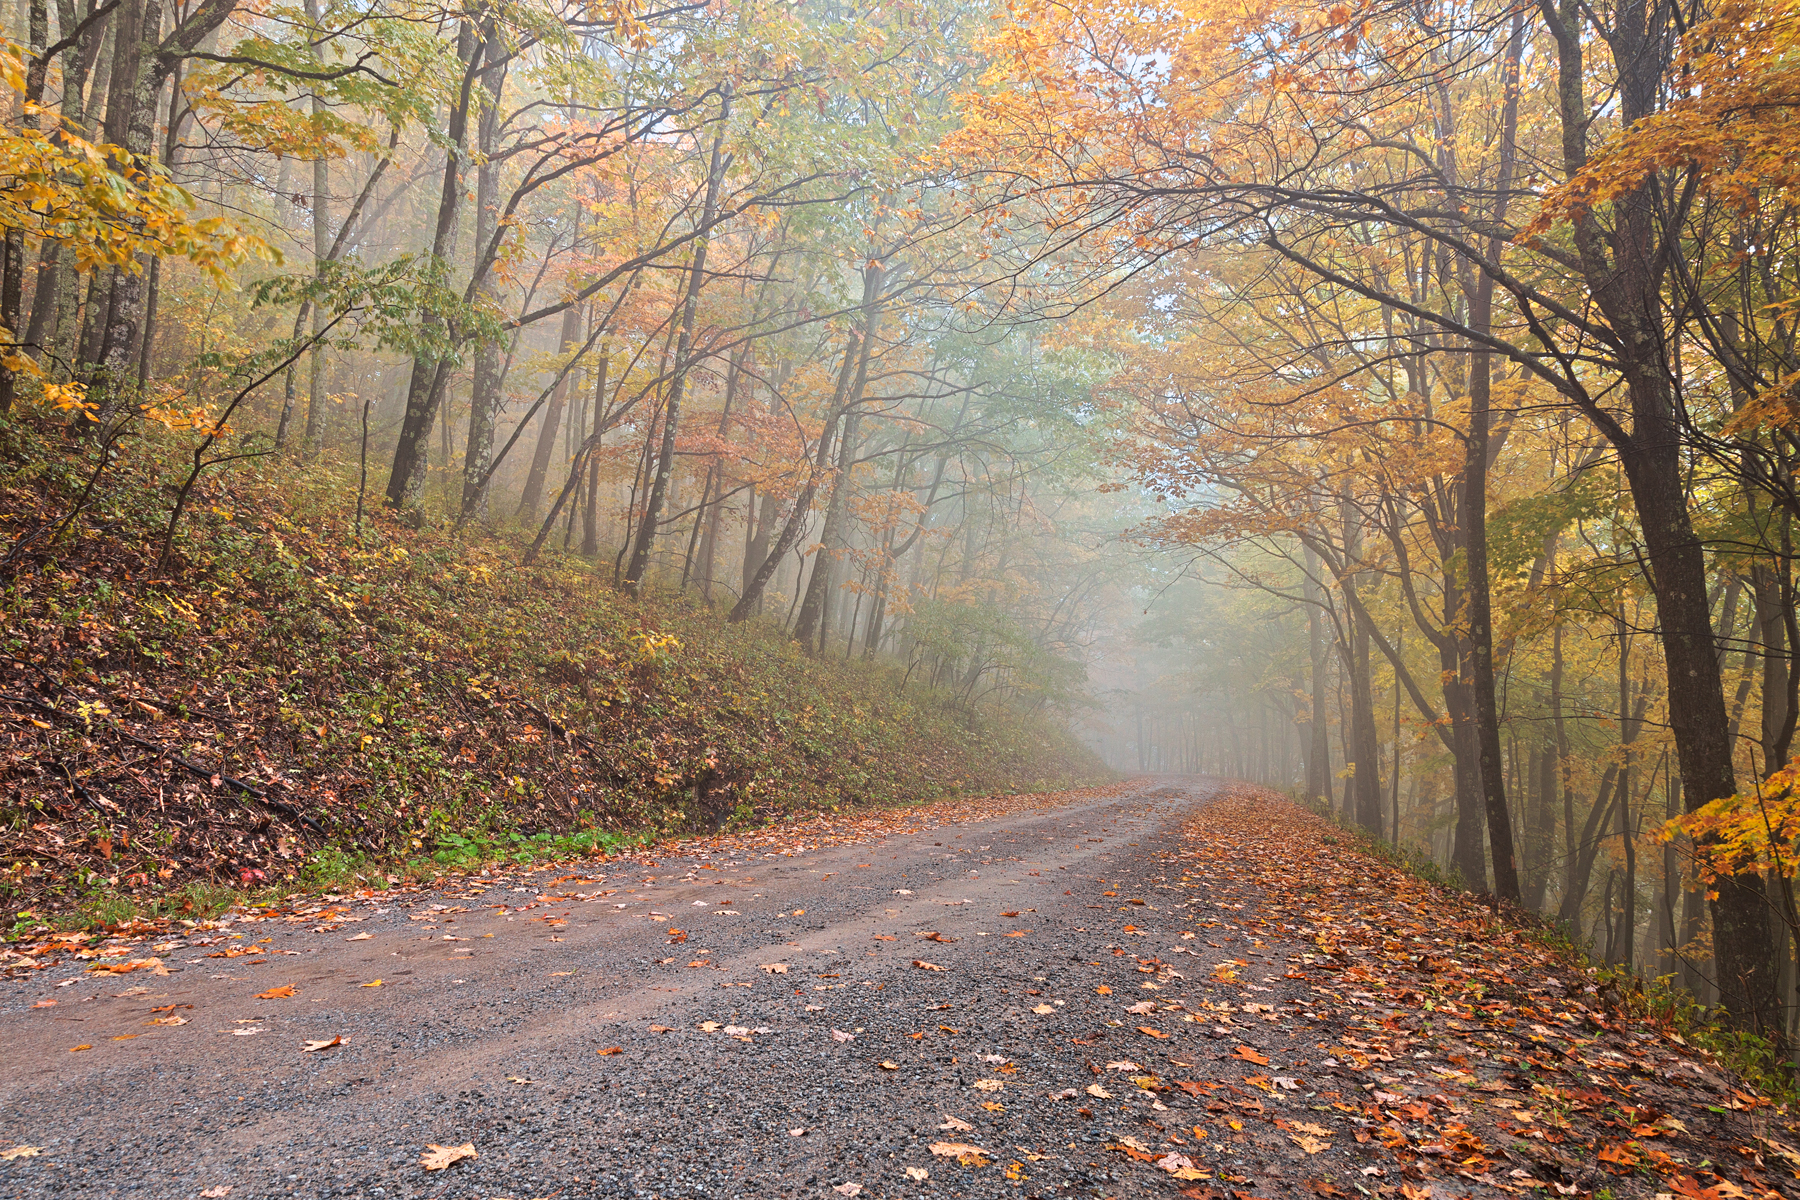 Misty autumn forest road - hdr photo